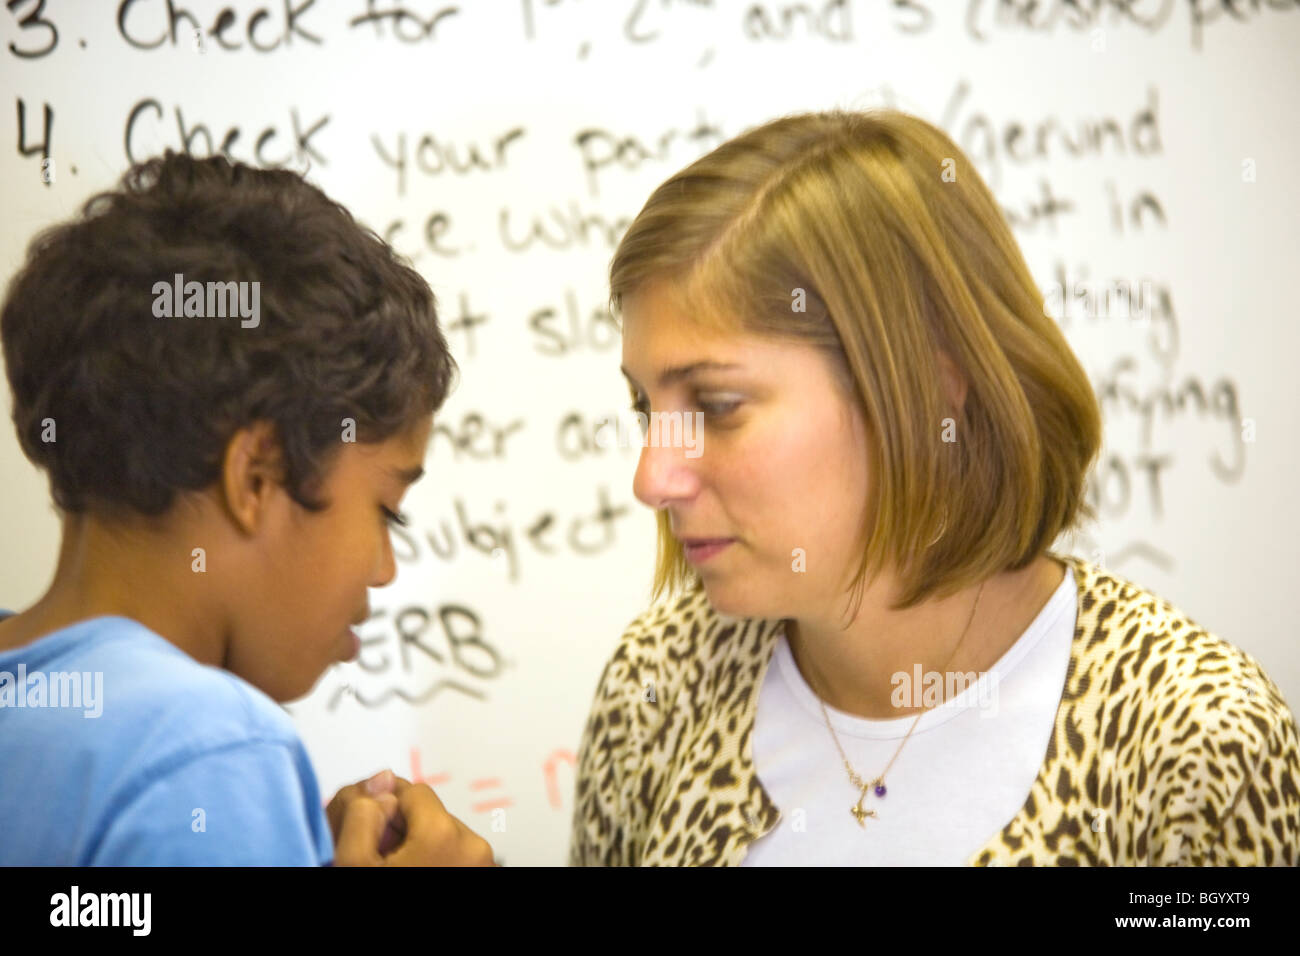 California middle school teacher counsels one of her students. Note white board in background. - Stock Image